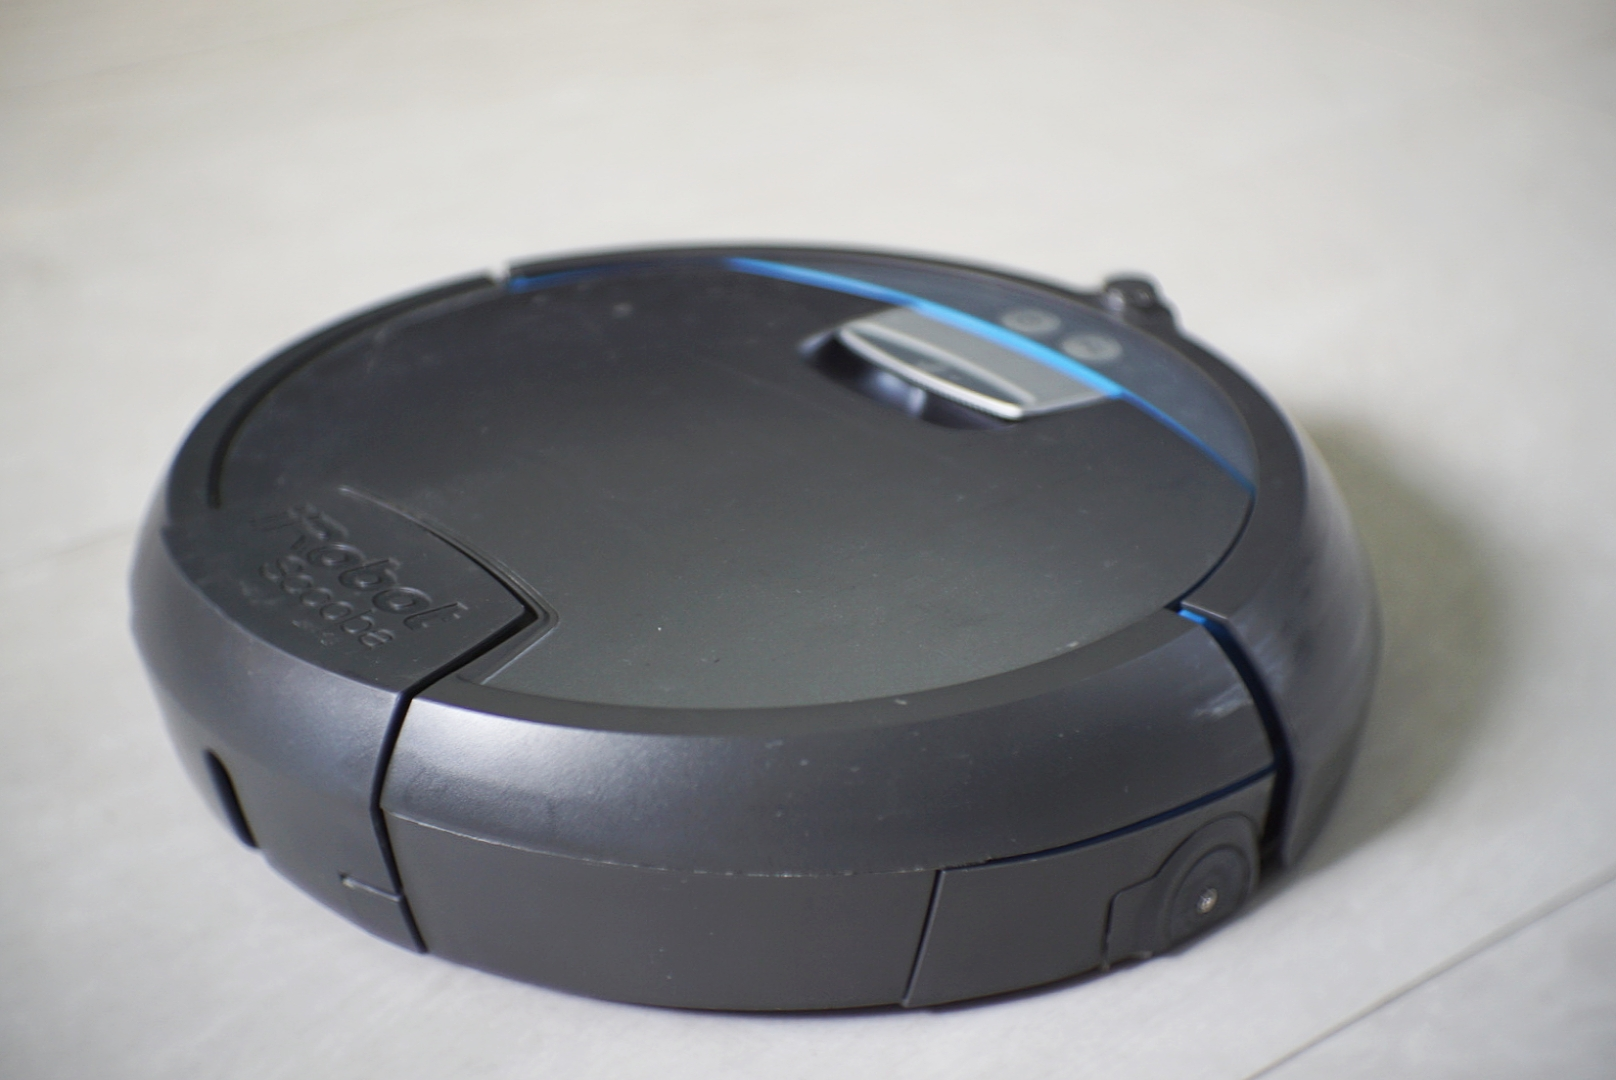 The iRobot Scooba 390